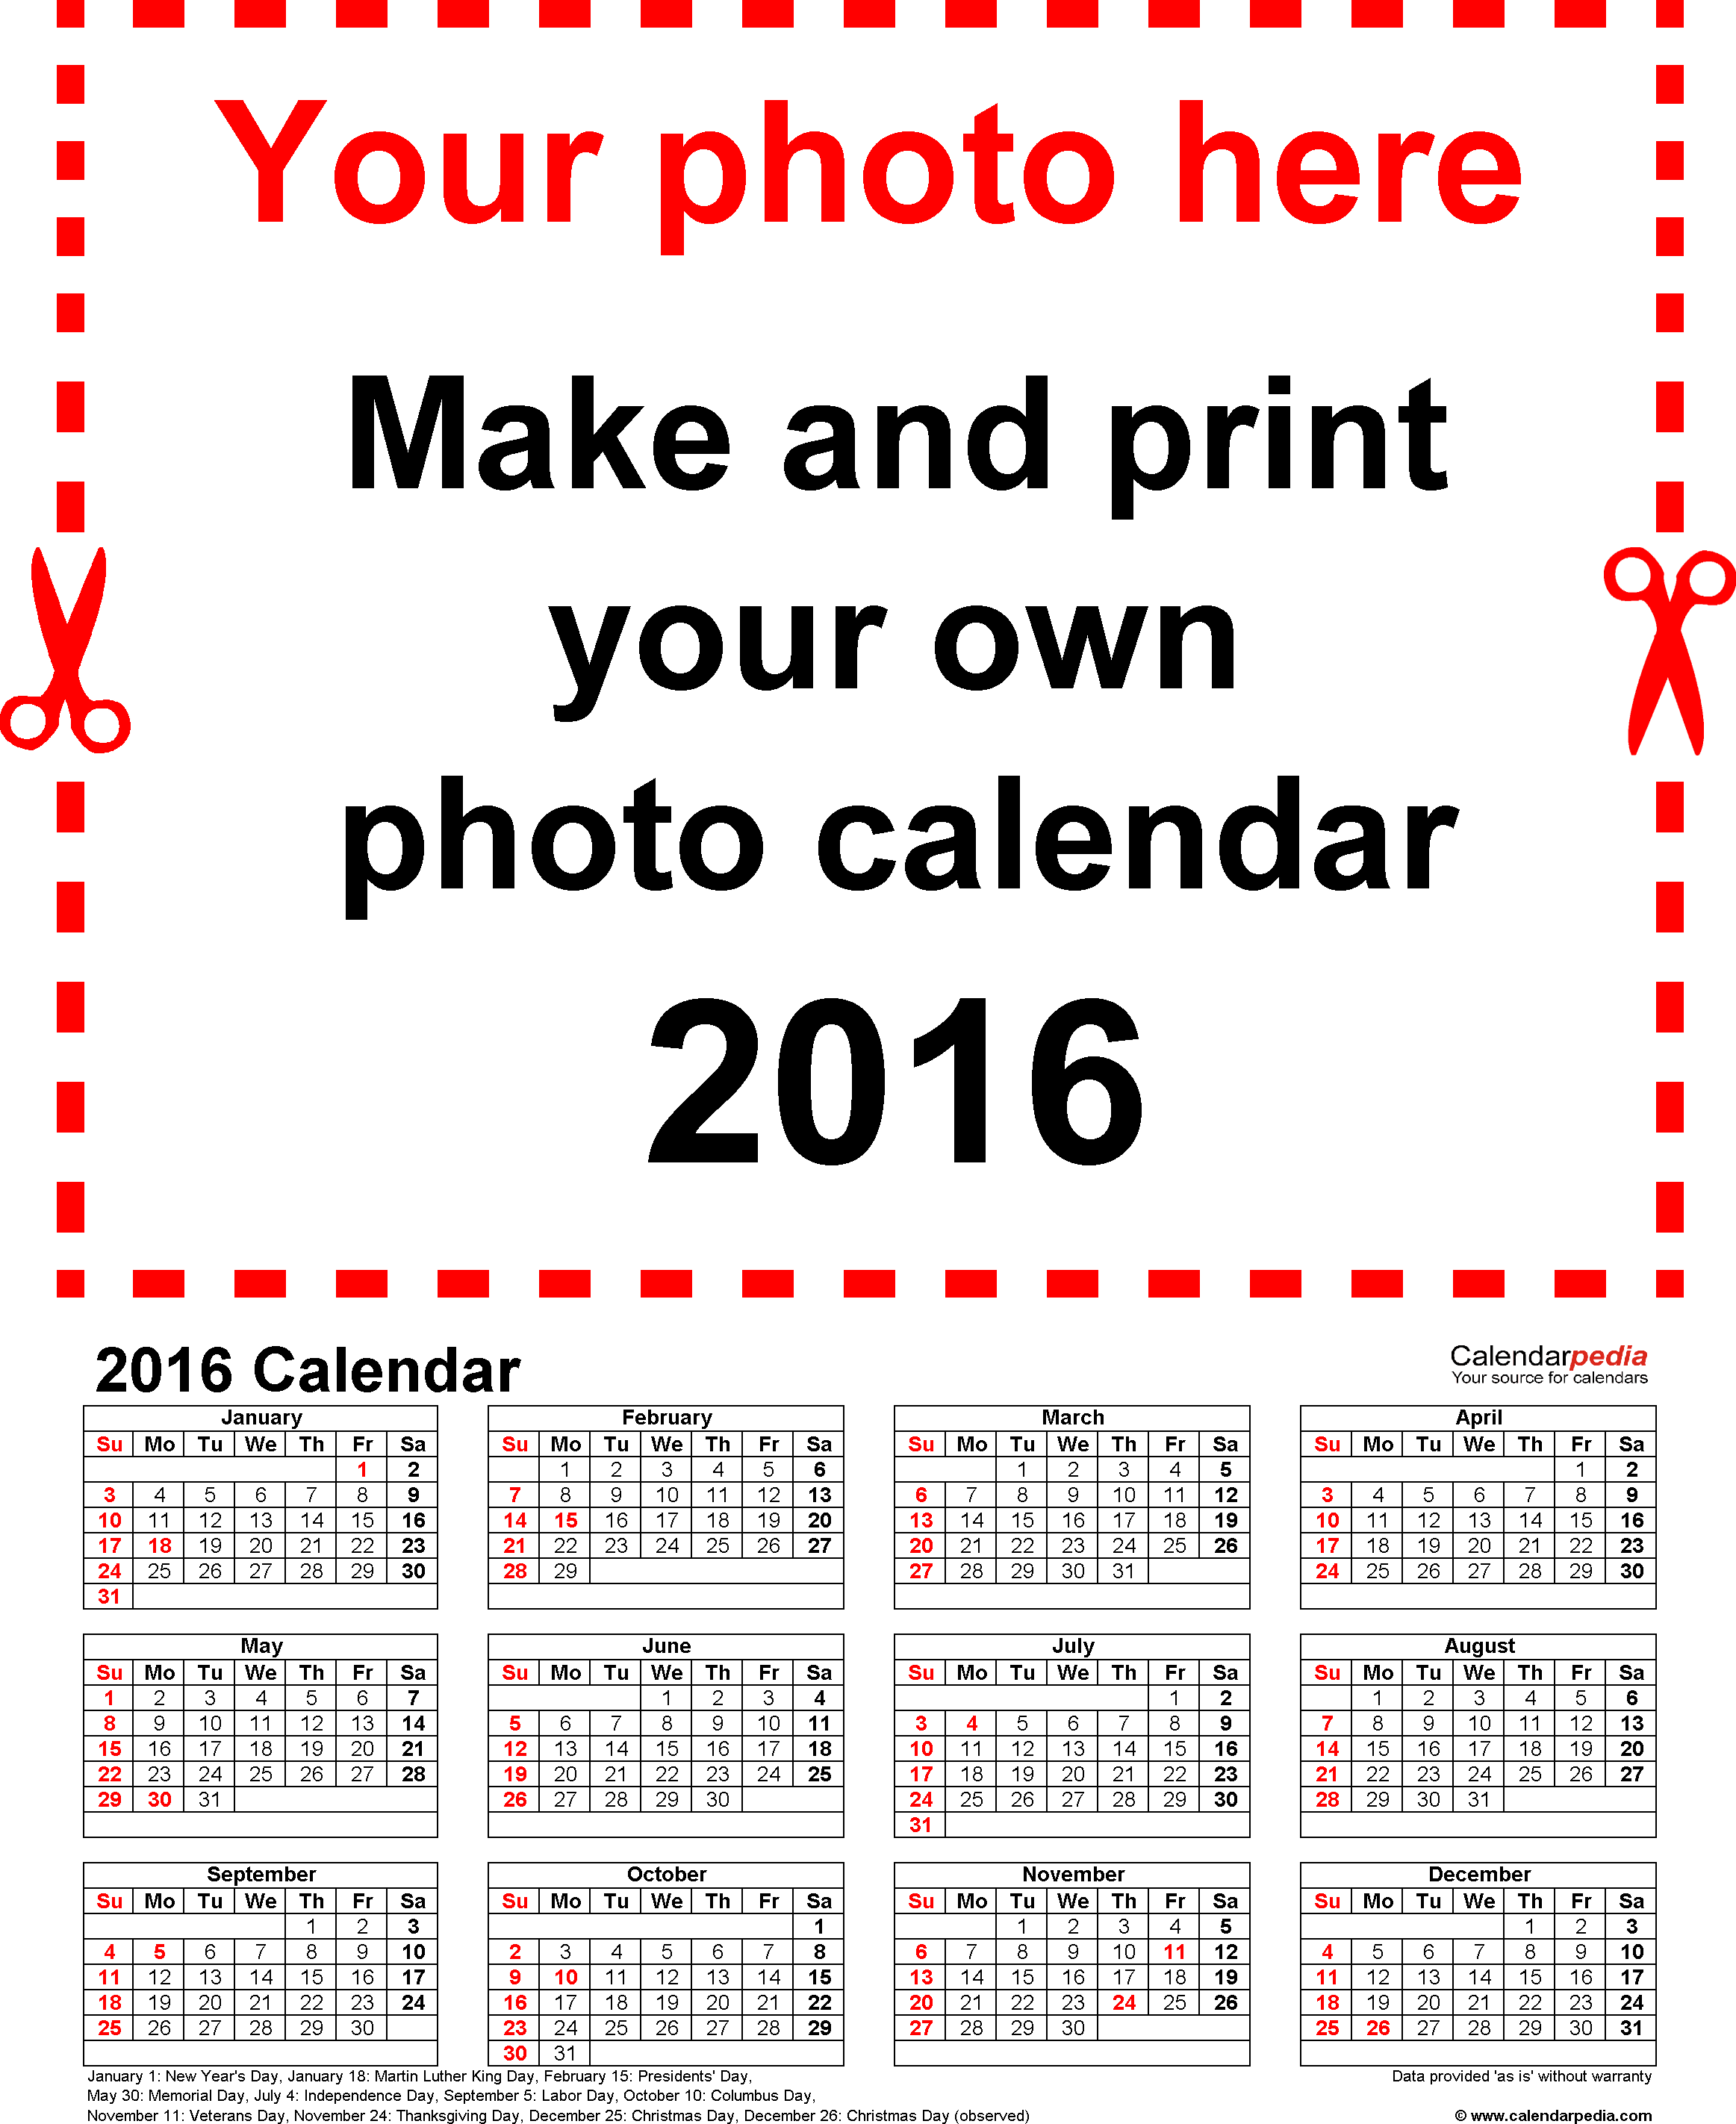 Photo calendar 2016 free printable Word templates – Printable Calendars Sample